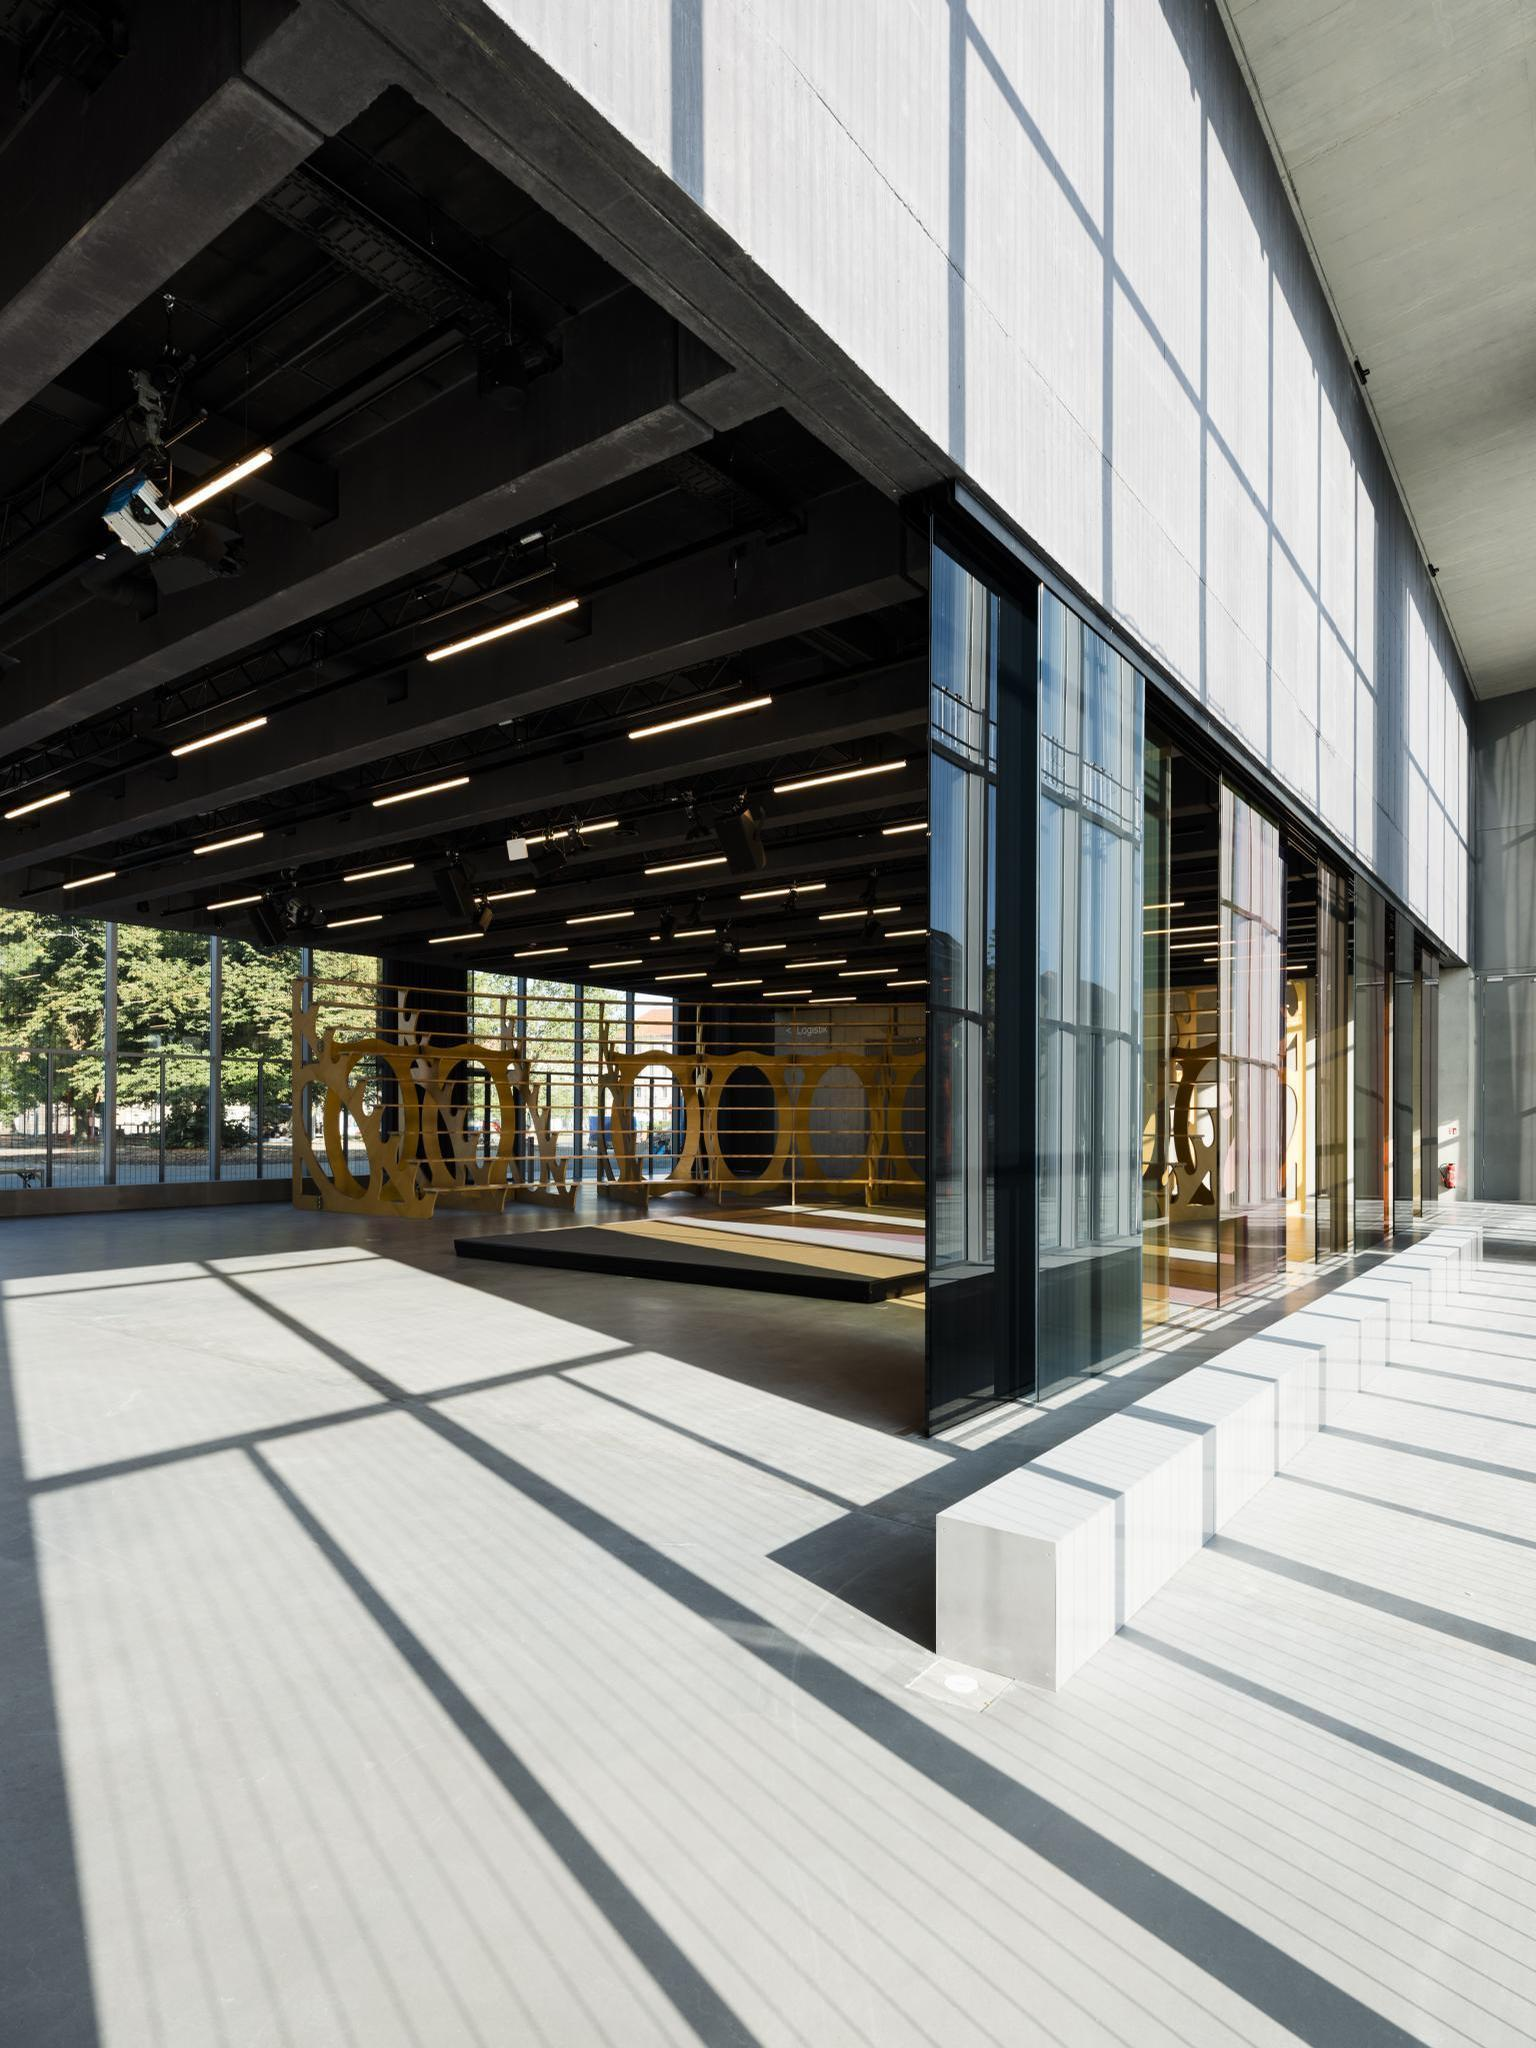 The ground floor <i>Open Stage</i> is a flexible multipurpose space, with room for temporary exhibitions / Stiftung Bauhaus Dessau / Thomas Meyer / Ostkreuz, 2019